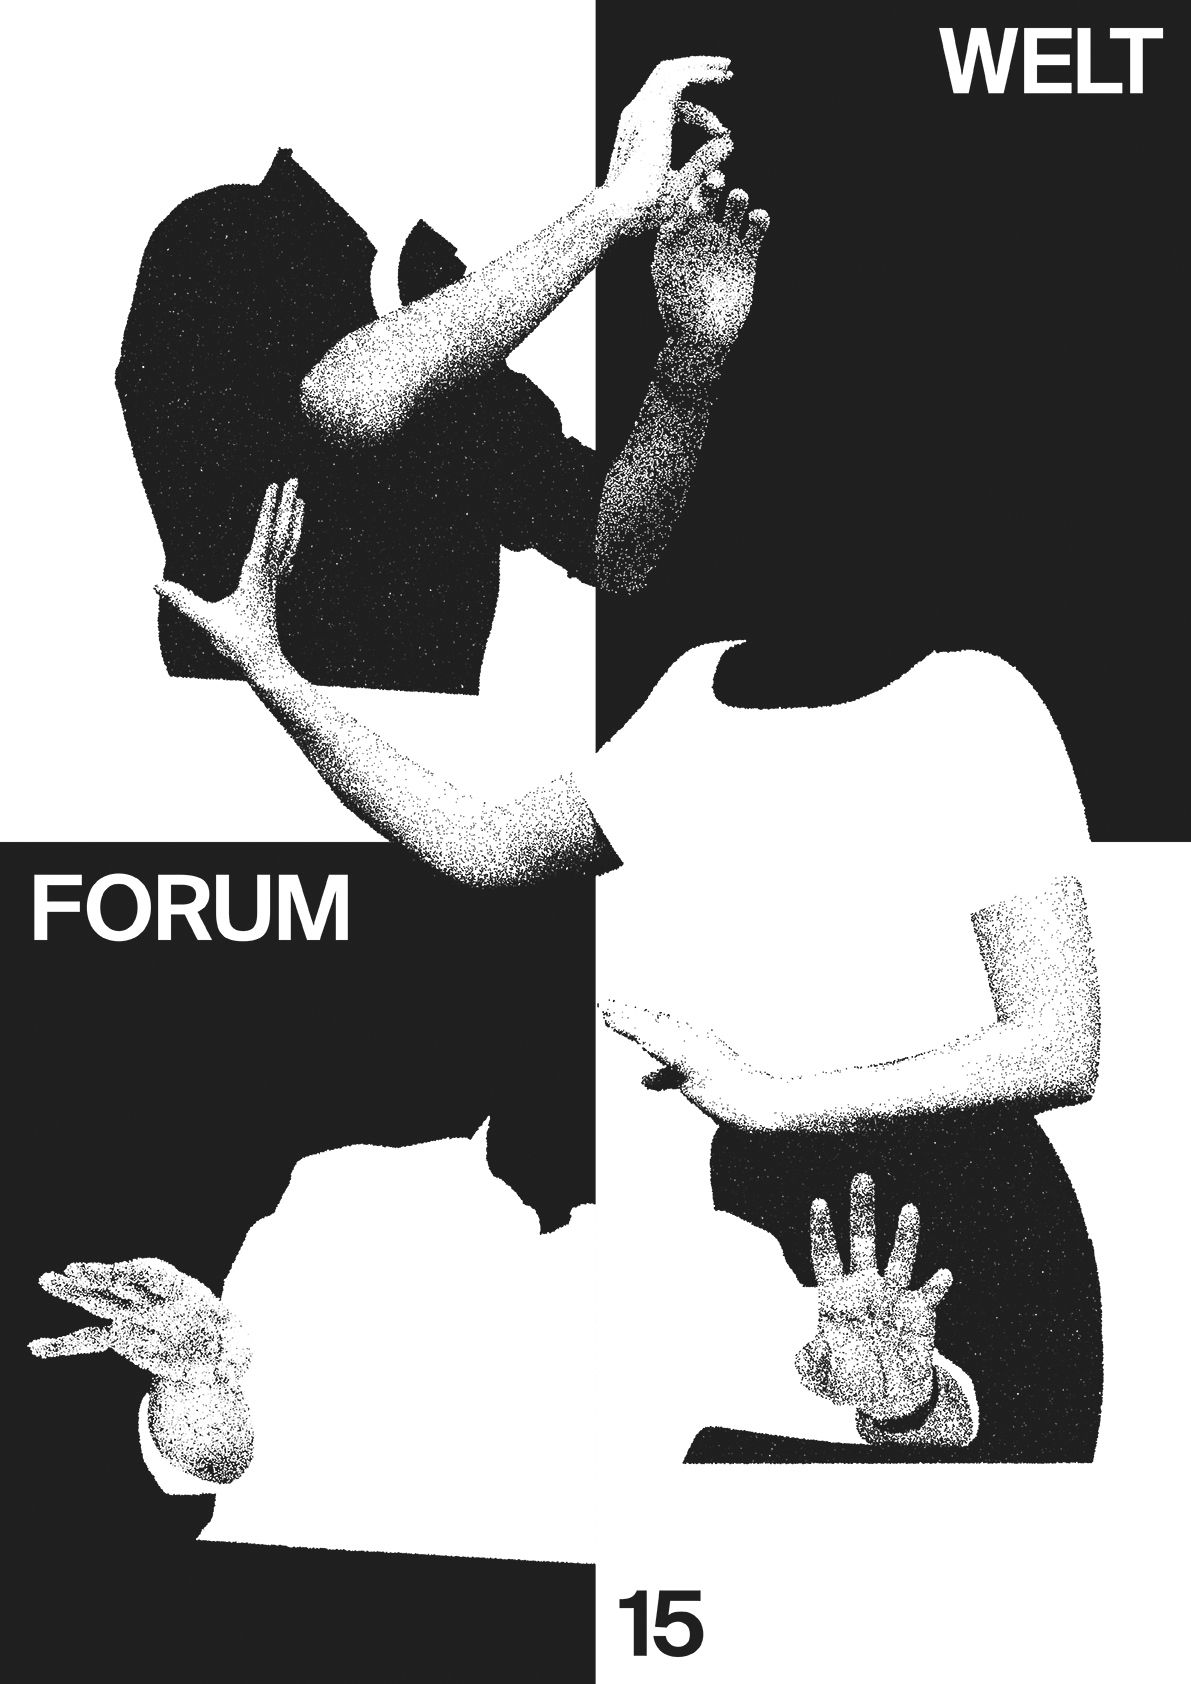 Poster design for symposium - Weltforum 15 Graphic Design Symposium Weltform At